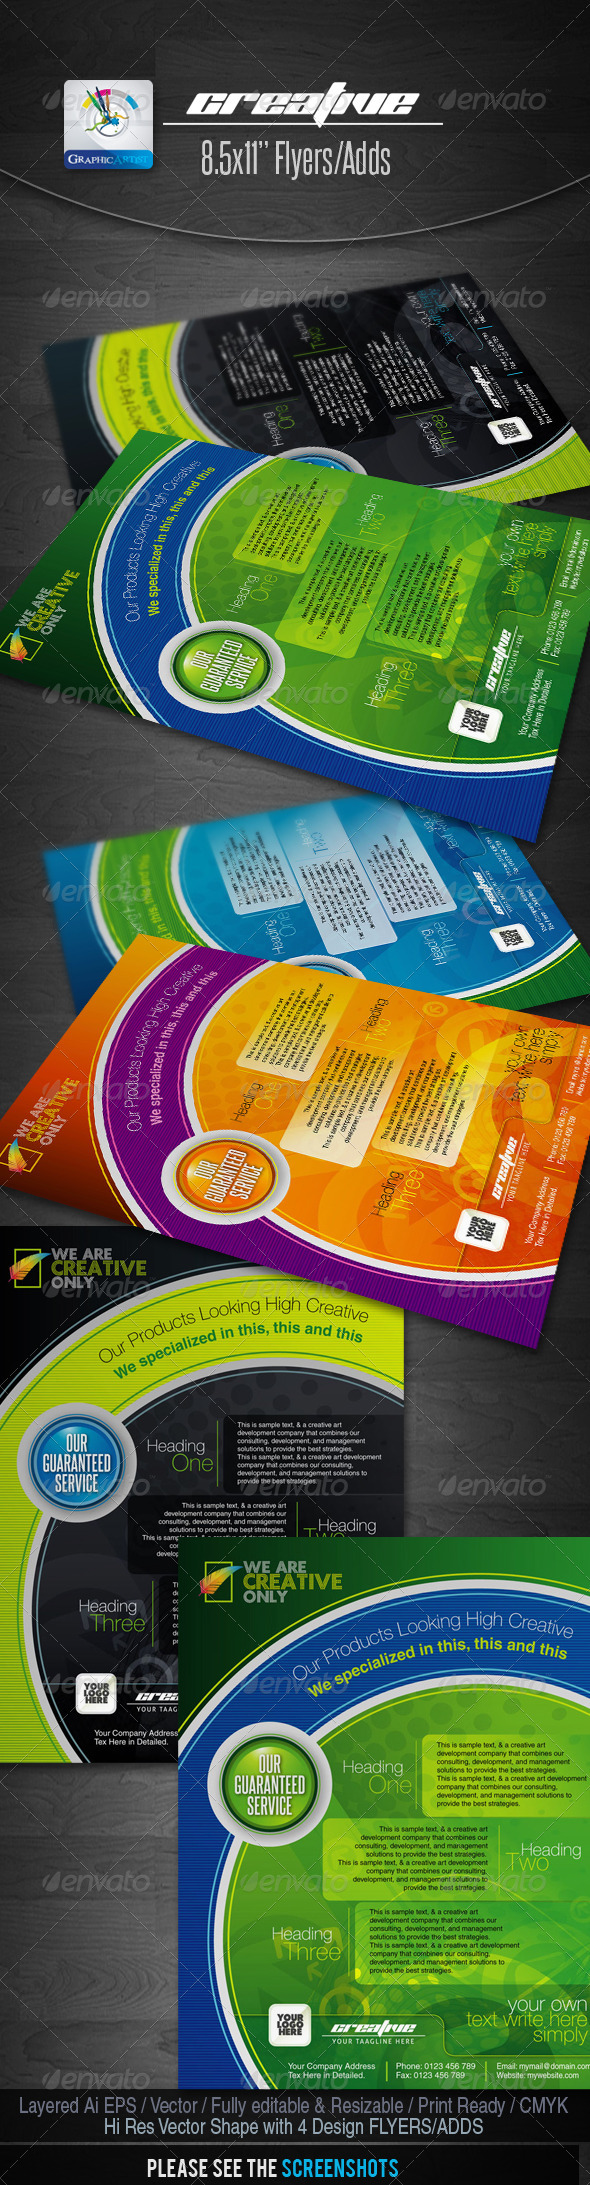 Creative Flyers/Adds - Corporate Flyers